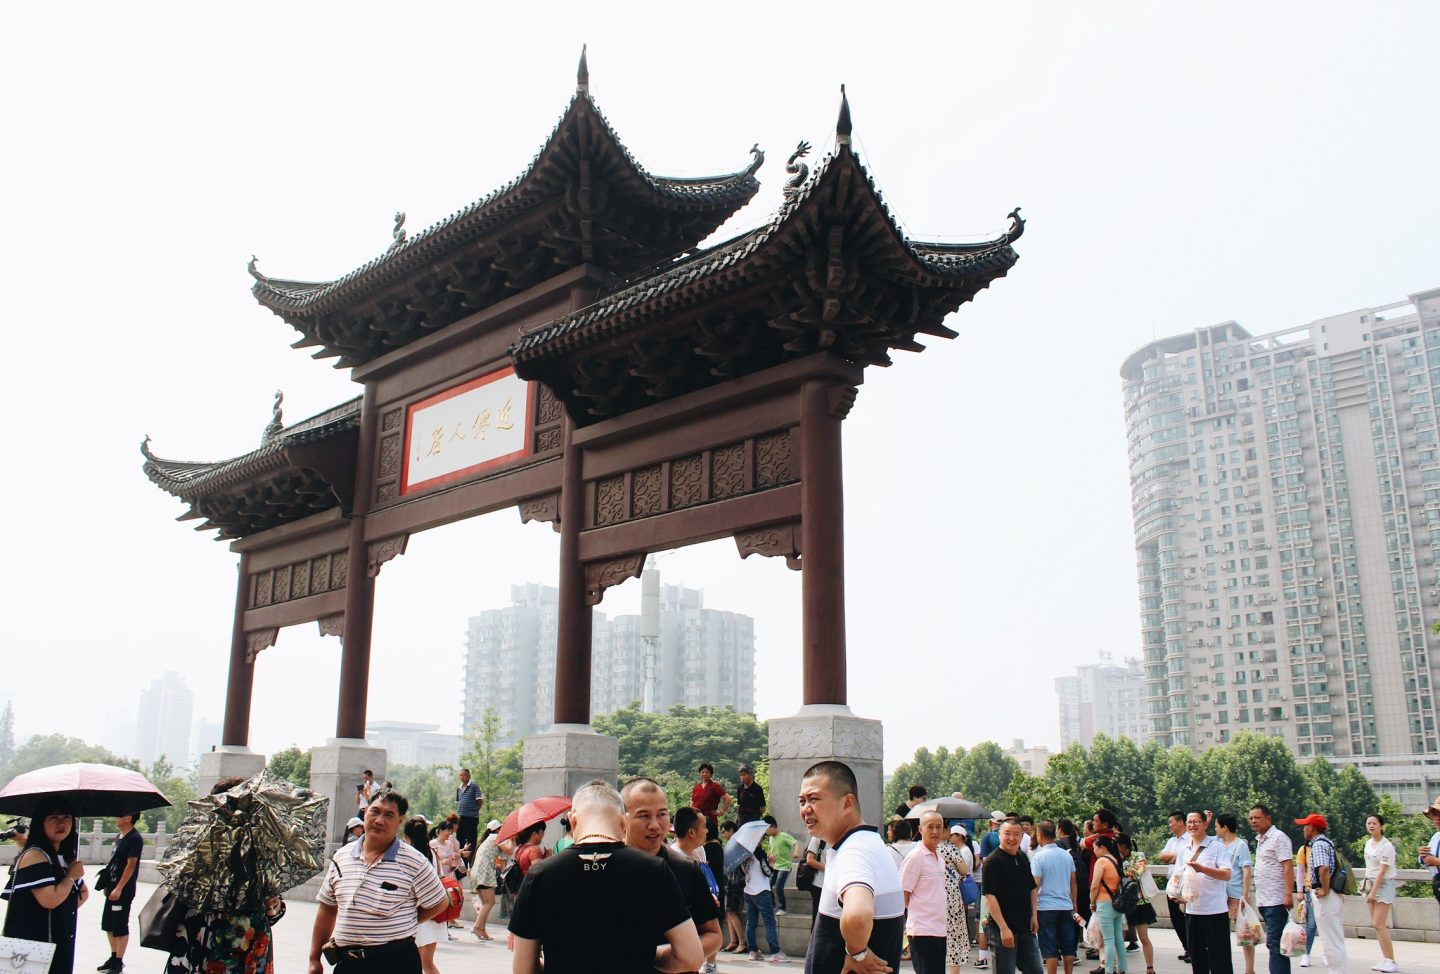 Sightseeing Wuhan, China with my study abroad group.